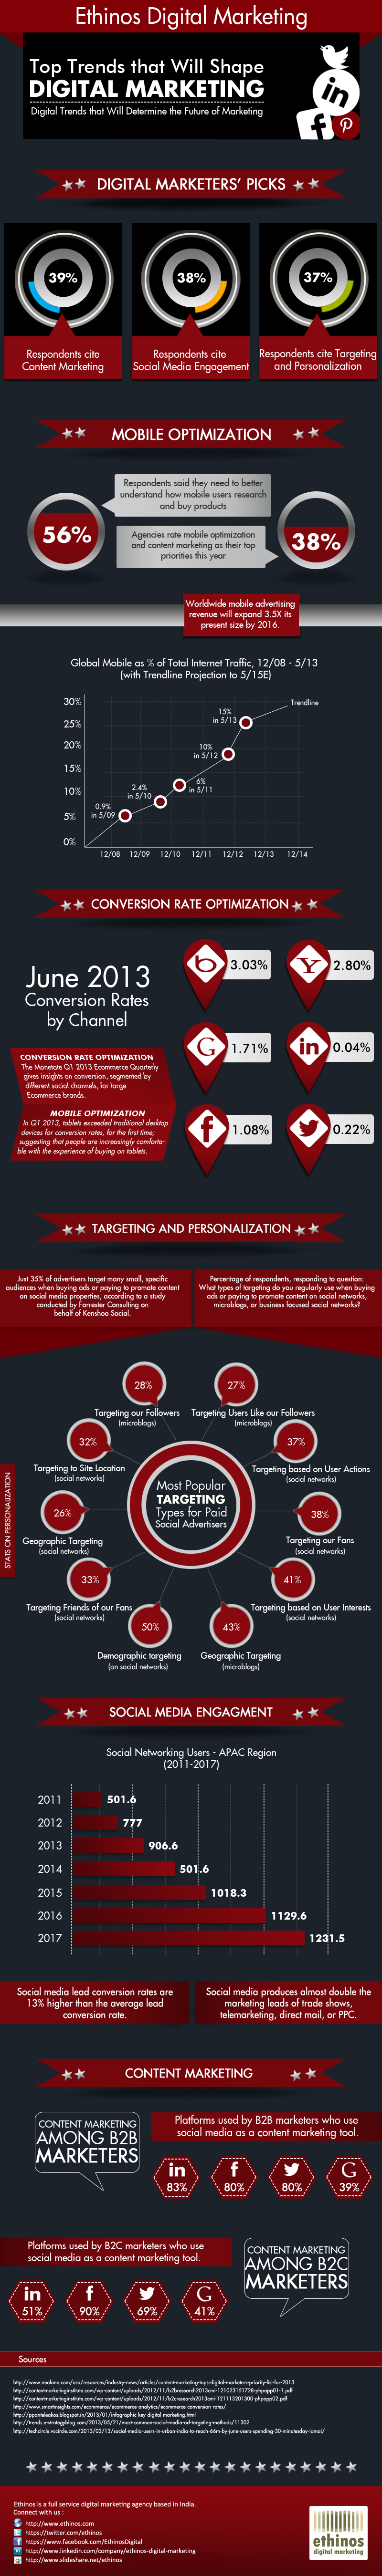 Top-Trends-That-Will-Shape-Digital-Marketing-Infographic